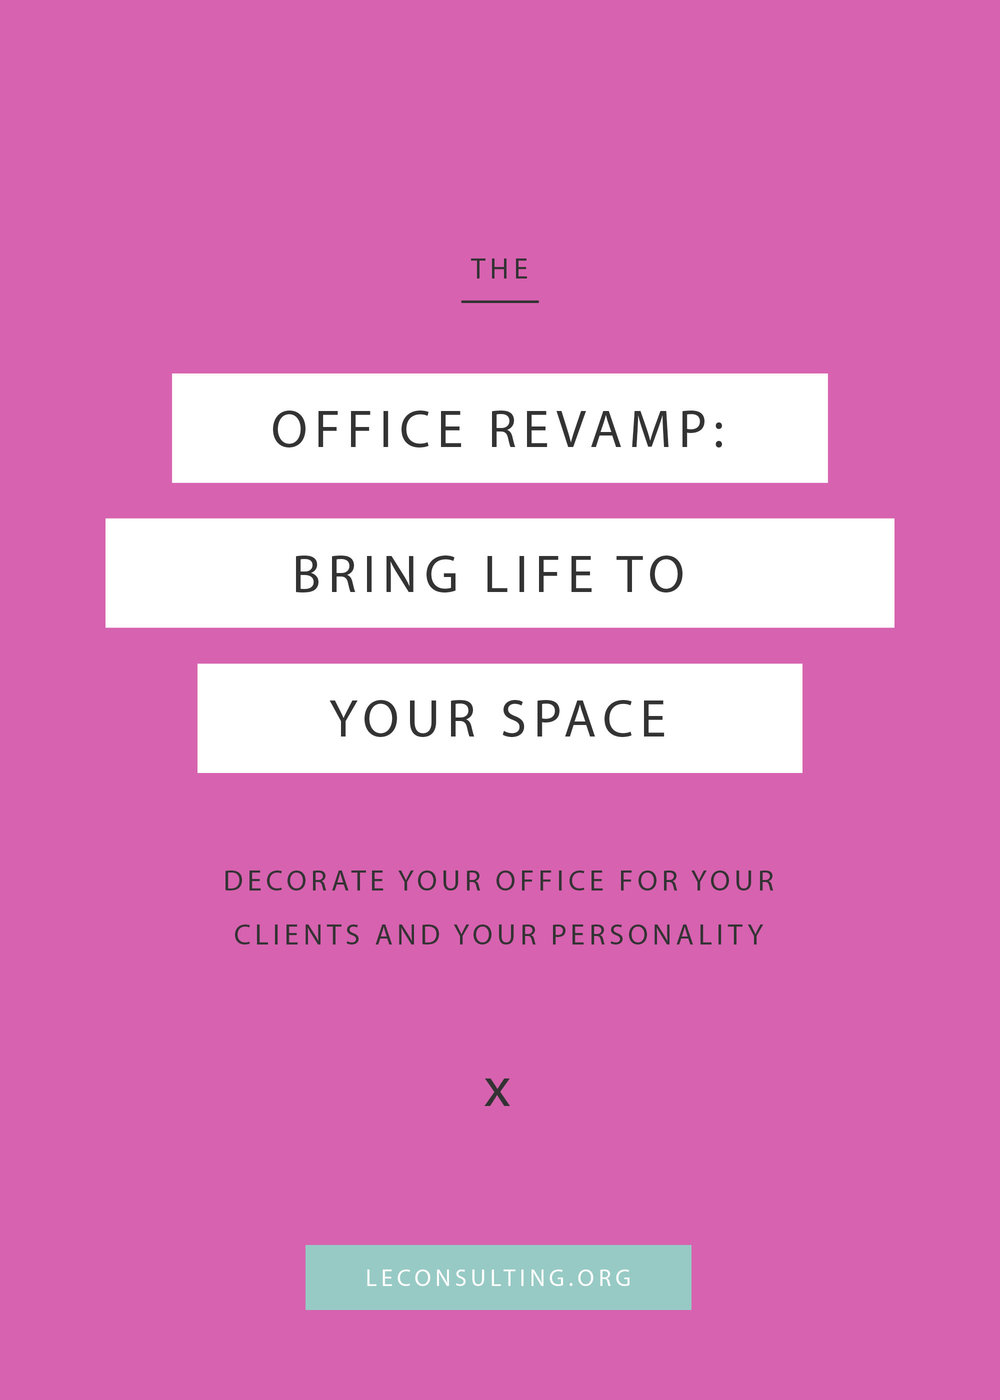 Most creative entrepreneurs start off in a home office and then move on to a bigger office space. While the idea is to have an office space to meet clients, it's important to create an office space that reflects your personality. Click through to read our four tips decorating your new office space for your business. | LE Consulting